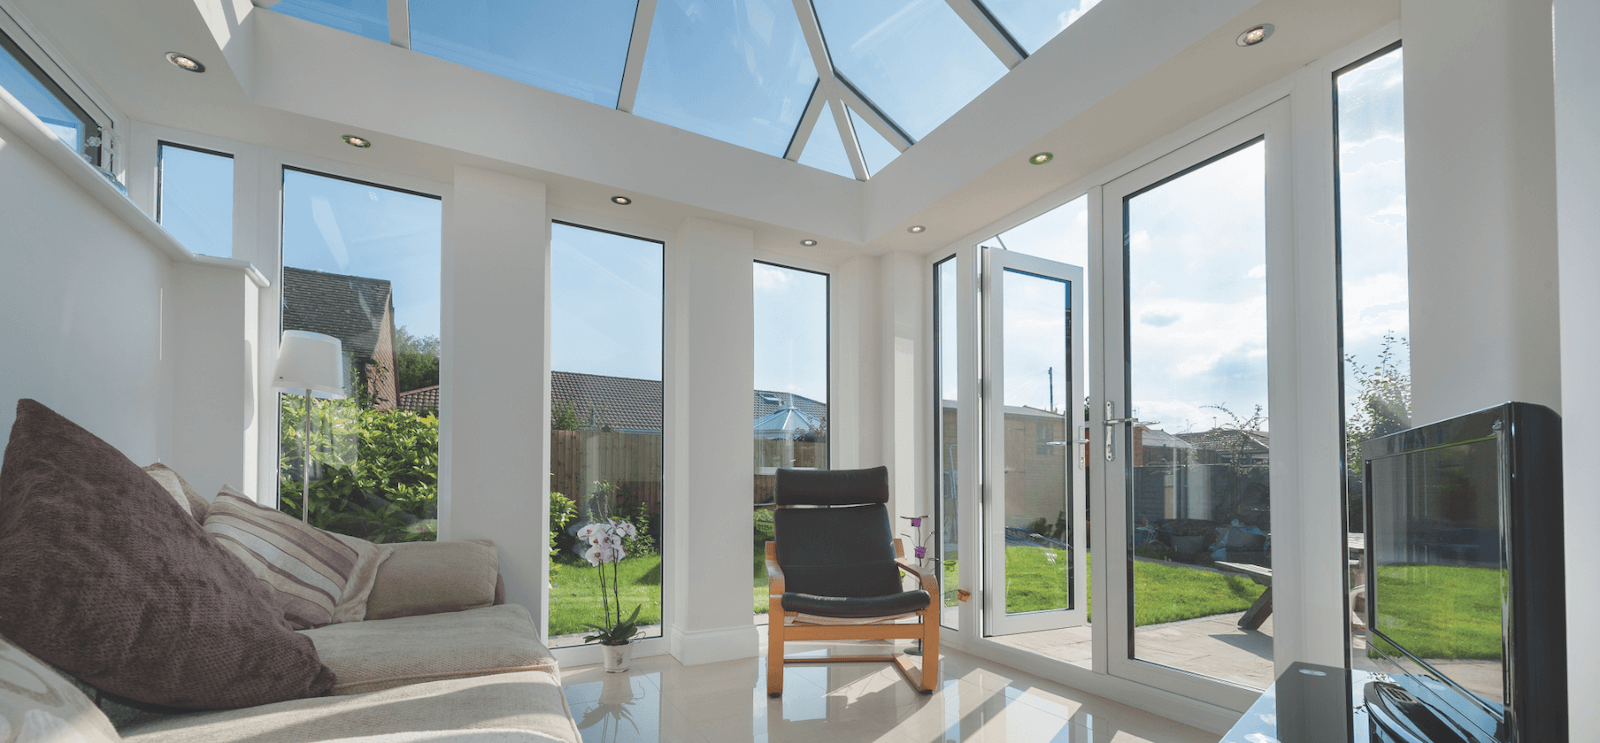 Interior of furnished conservatory